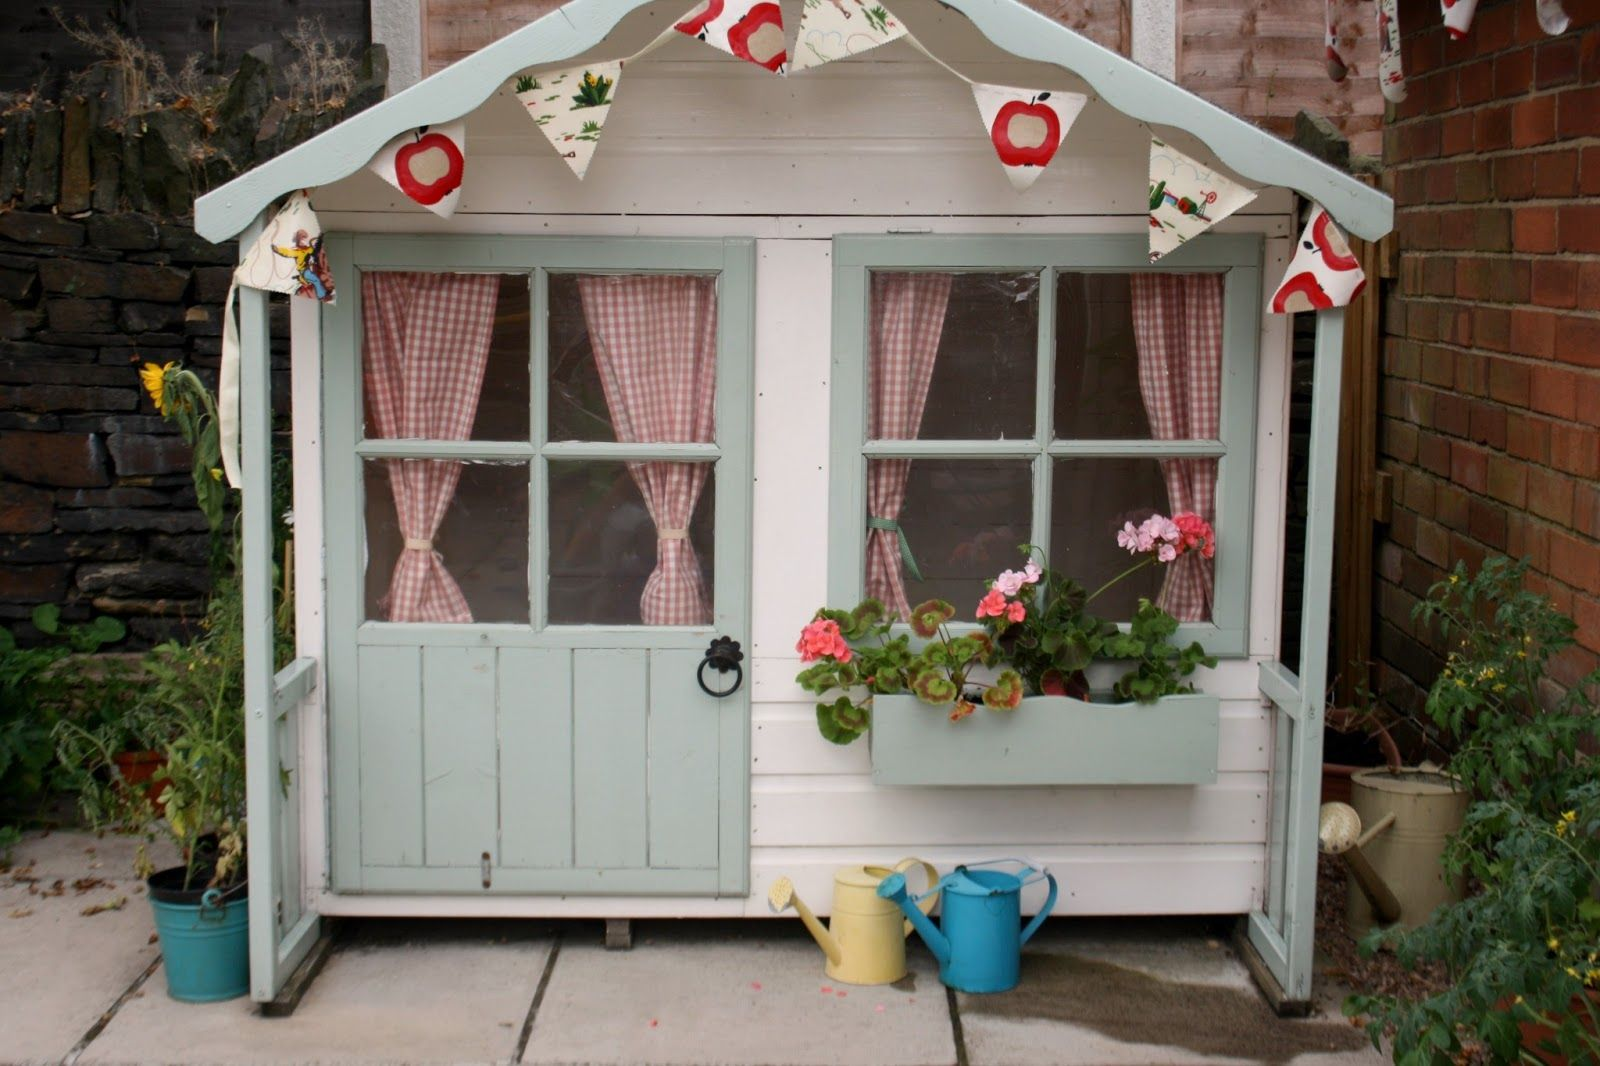 Home, Outdoor Playhouse For Kids Small Idea: Boost The Girlsu0027 Creativity  With Outdoor Playhouse For Kids Part 70